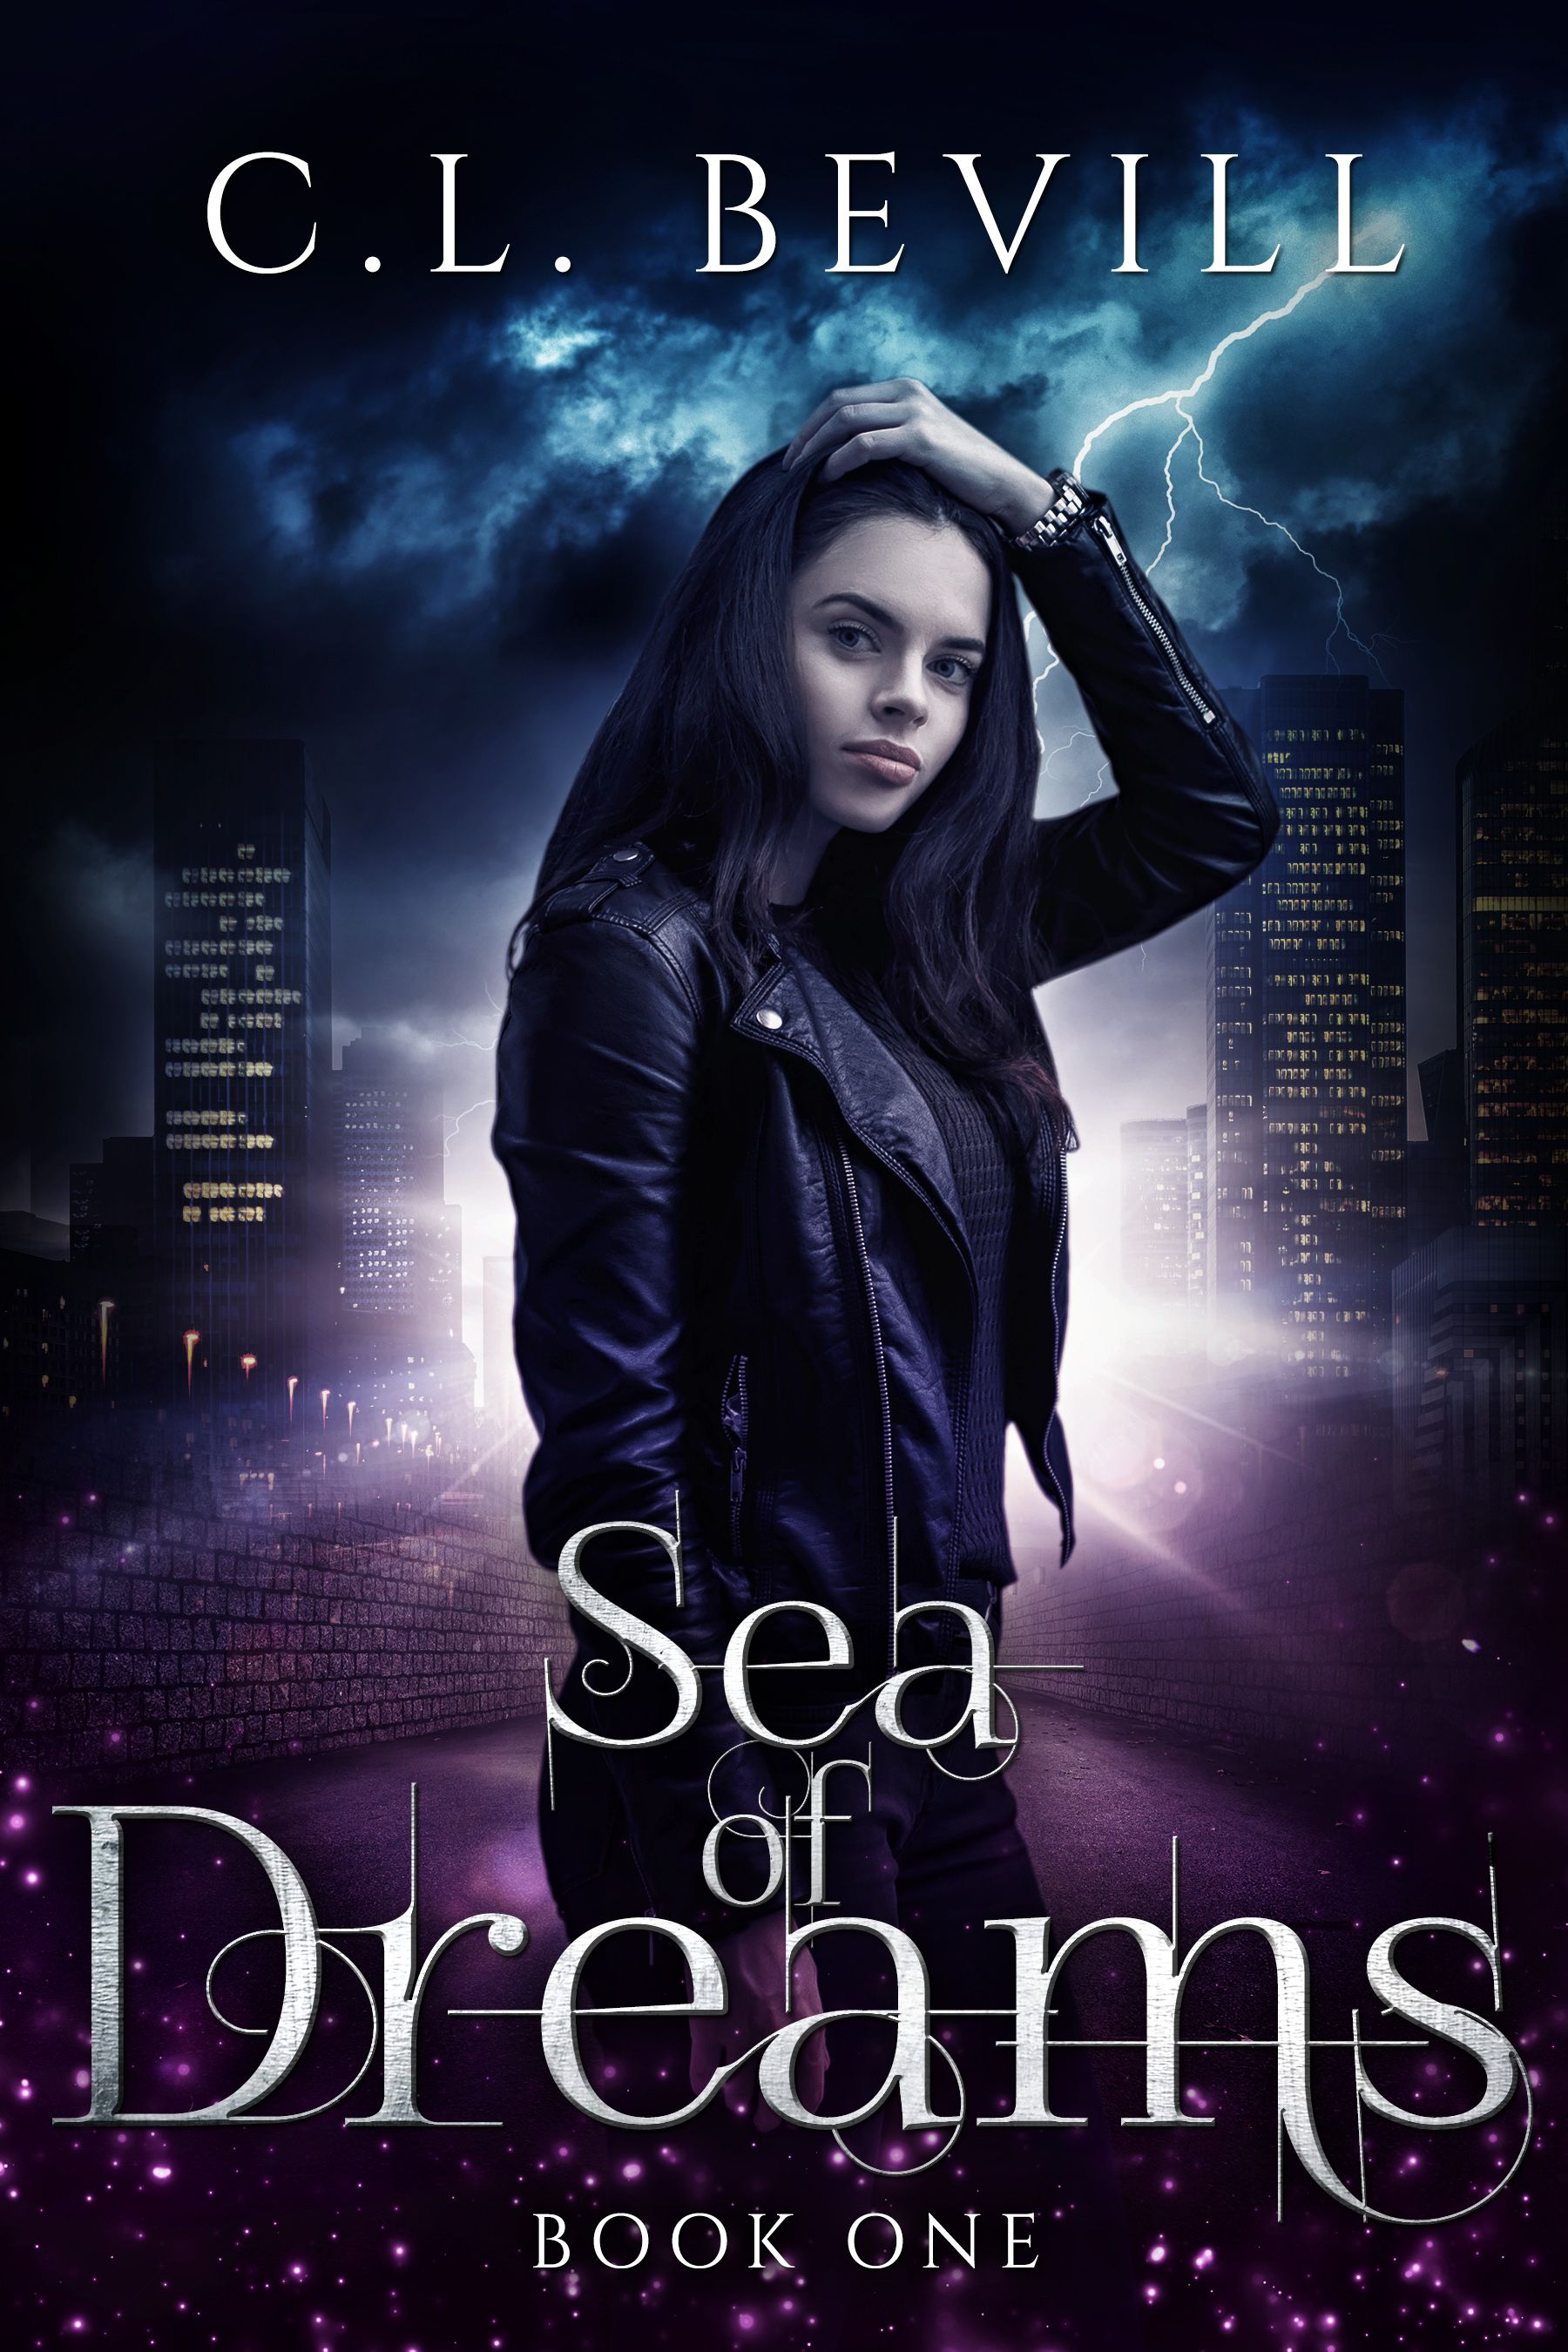 Book Cover Fantasy Explanation : Paranormal urban fantasy book cover design by milo